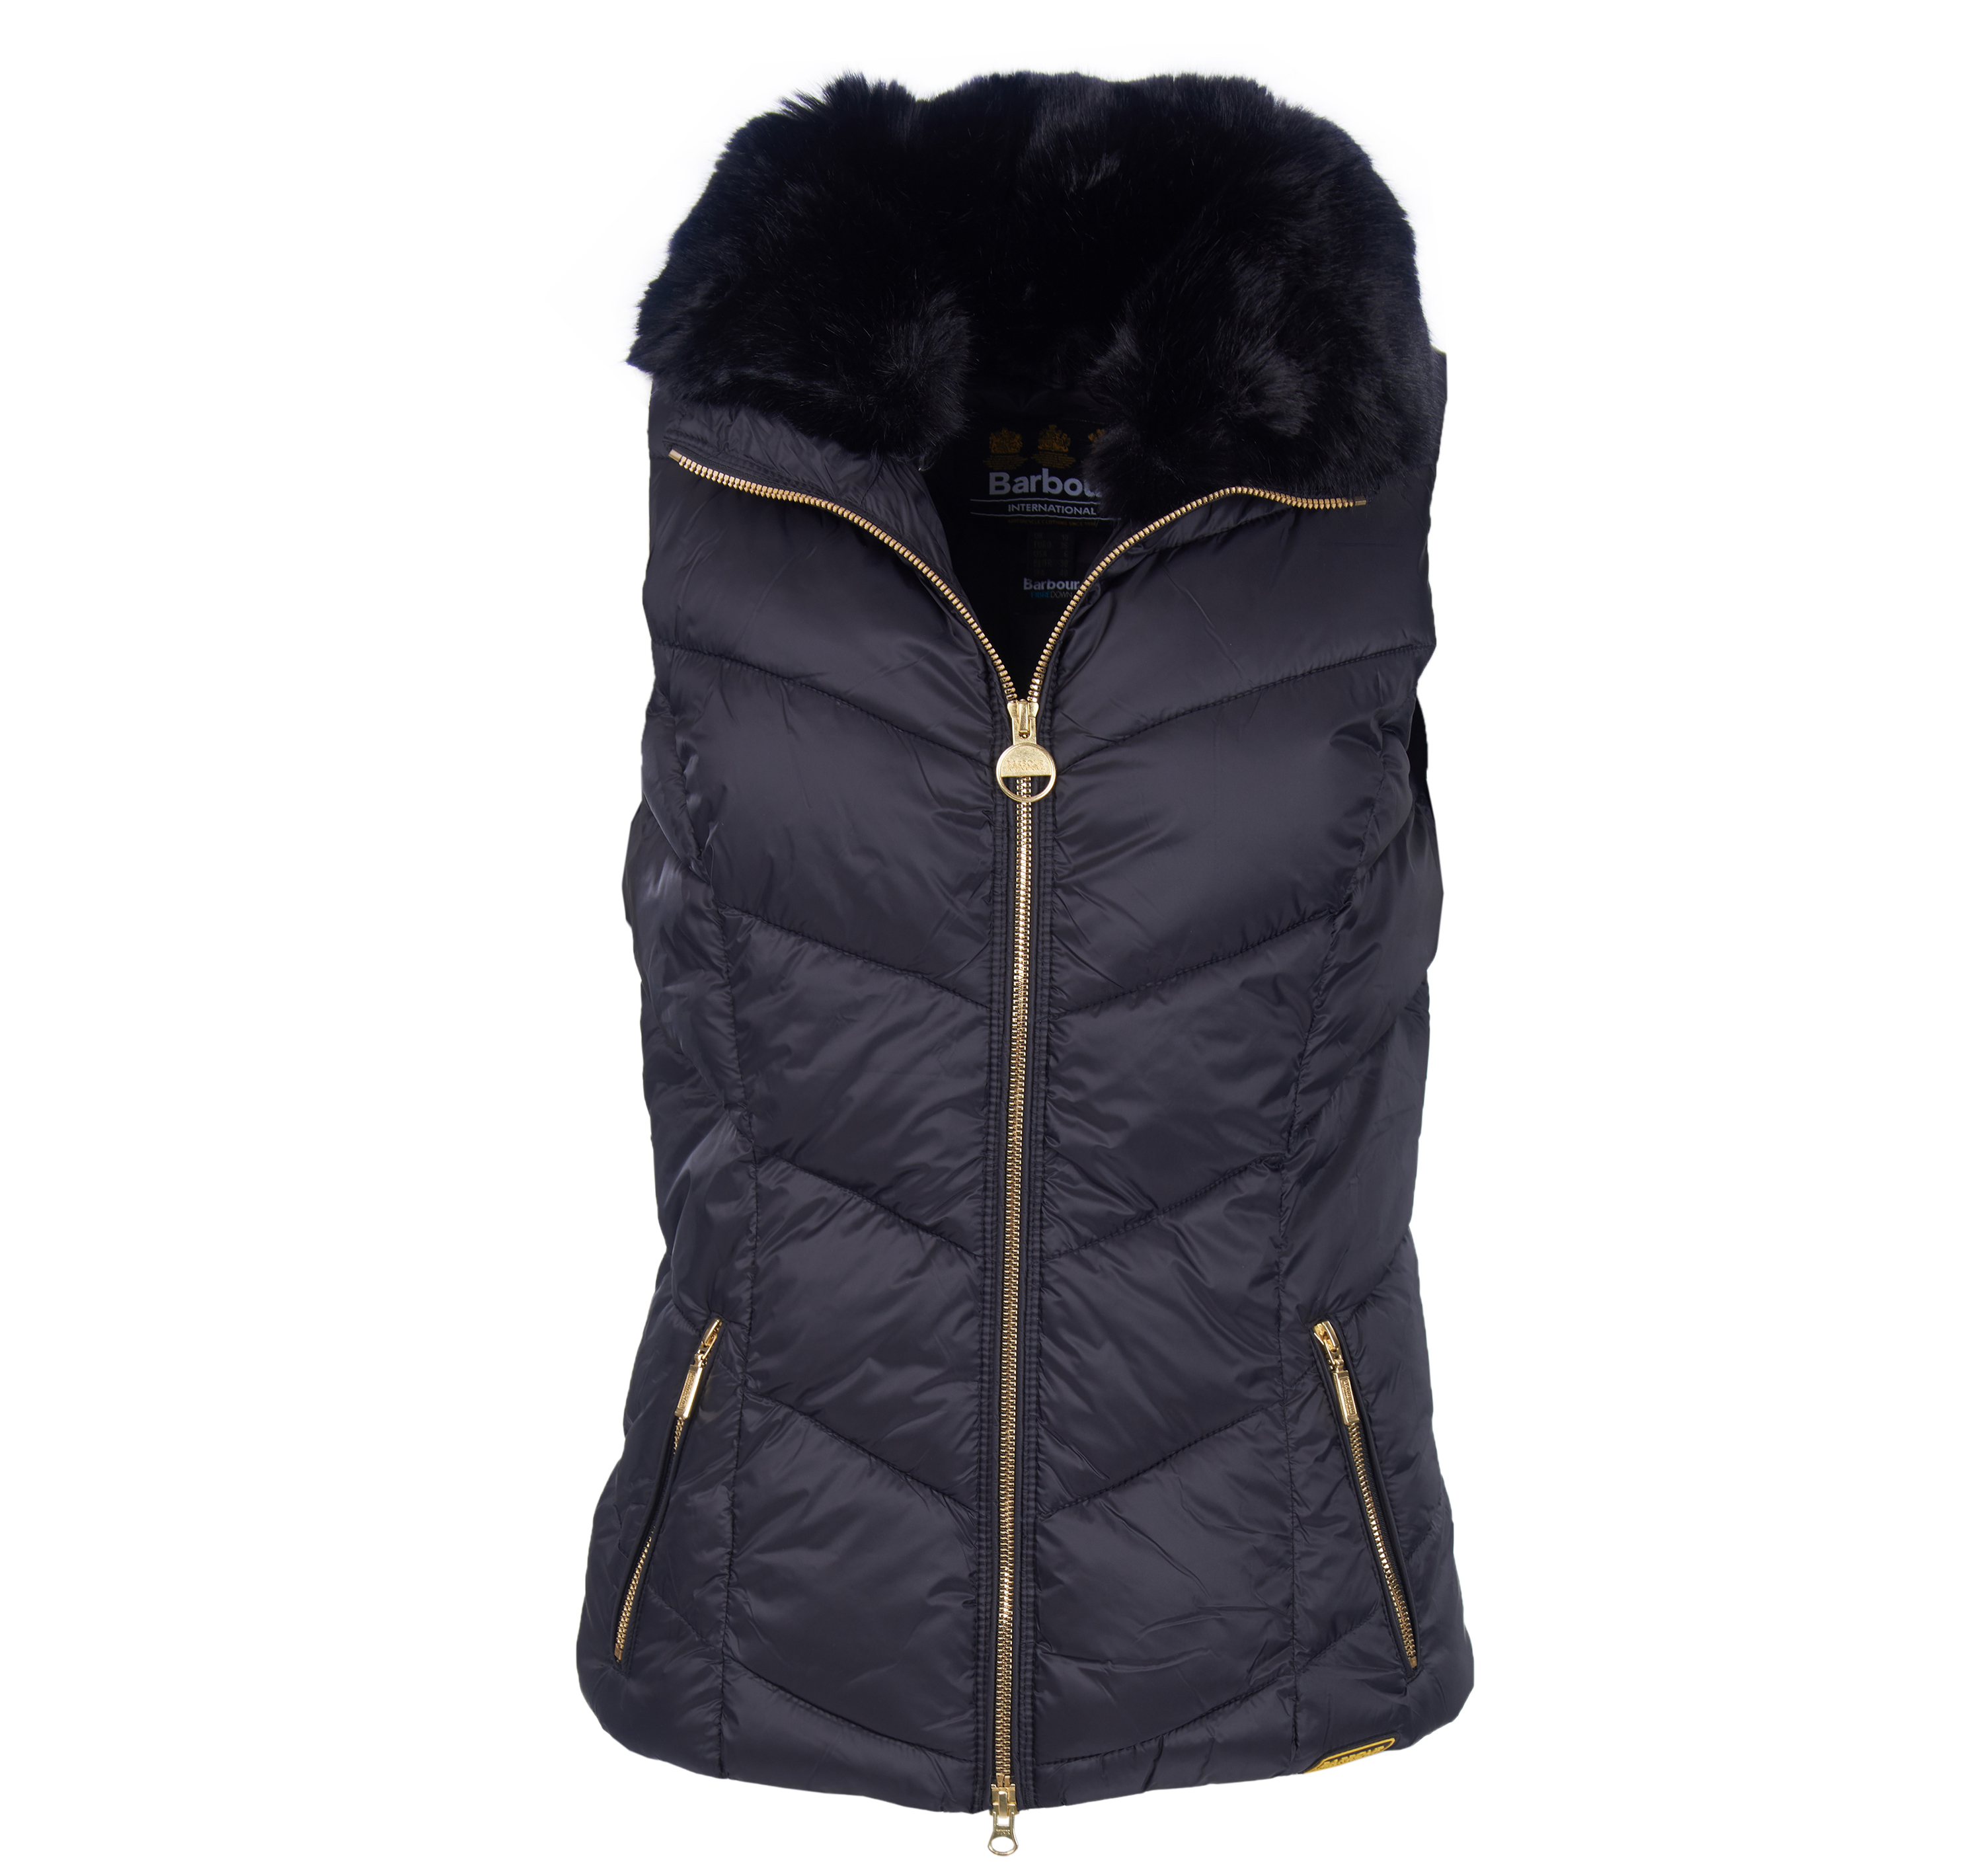 Barbour Barbour Nurburg Gilet Black